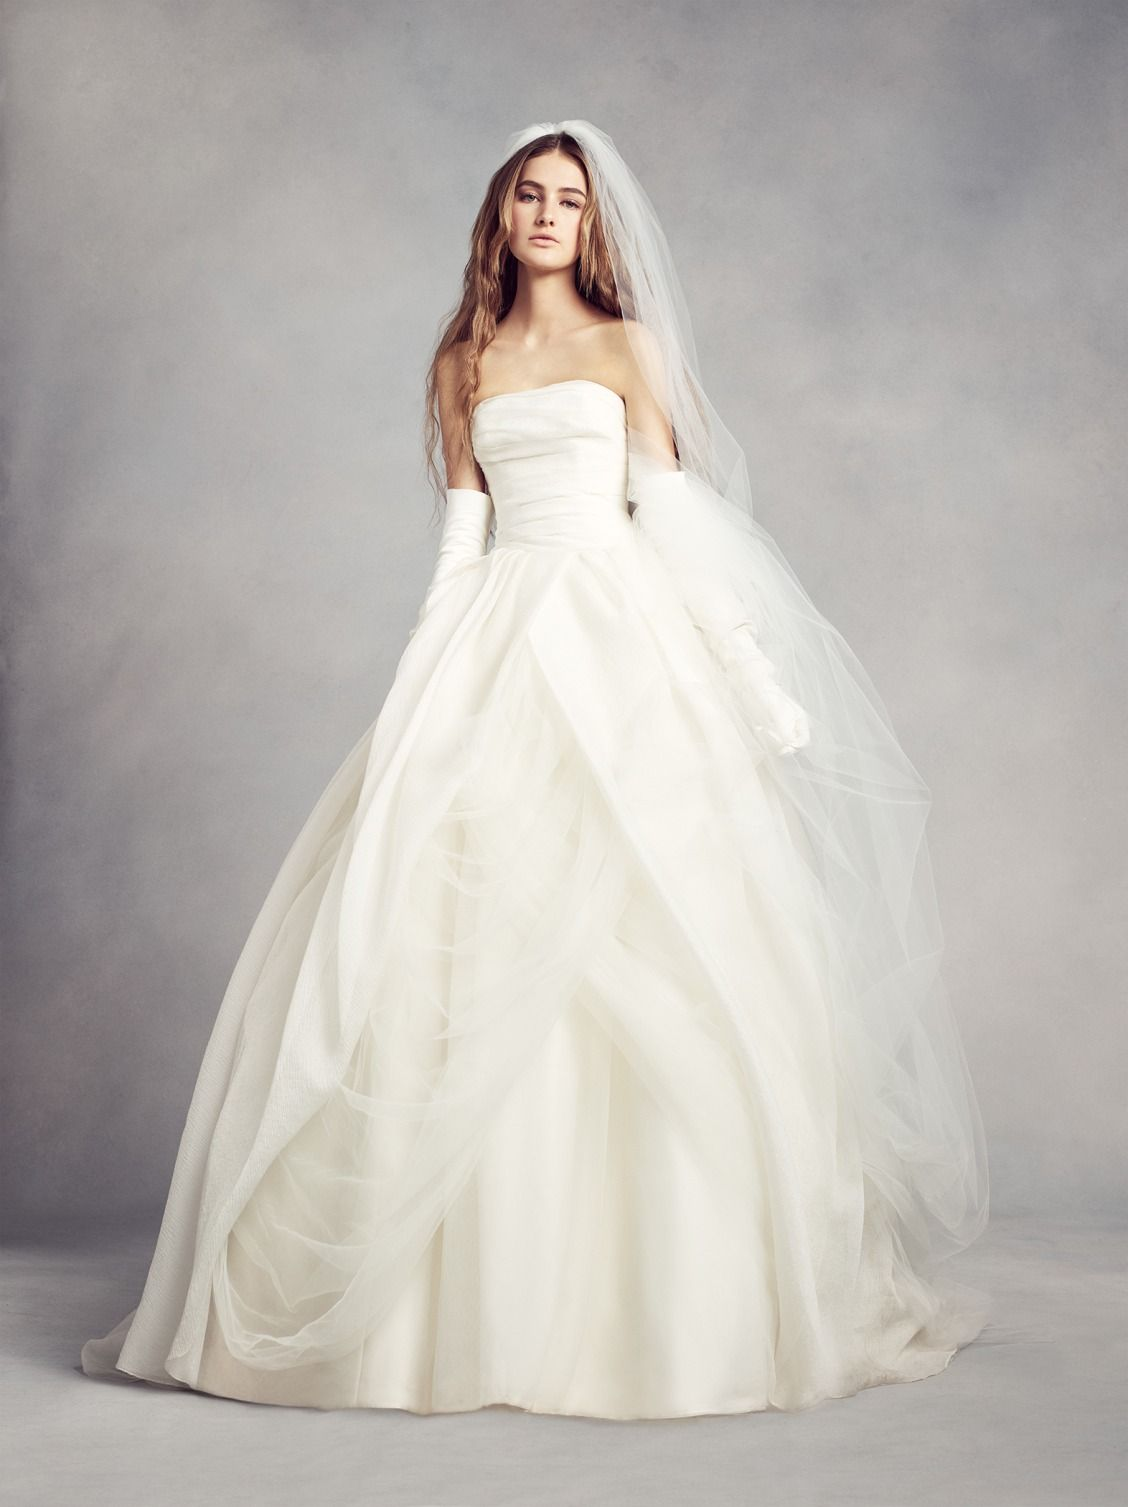 f9bb93c28845 Shop this WHITE by Vera Wang wedding dress at David's Bridal. This  magnificent textured organza ...